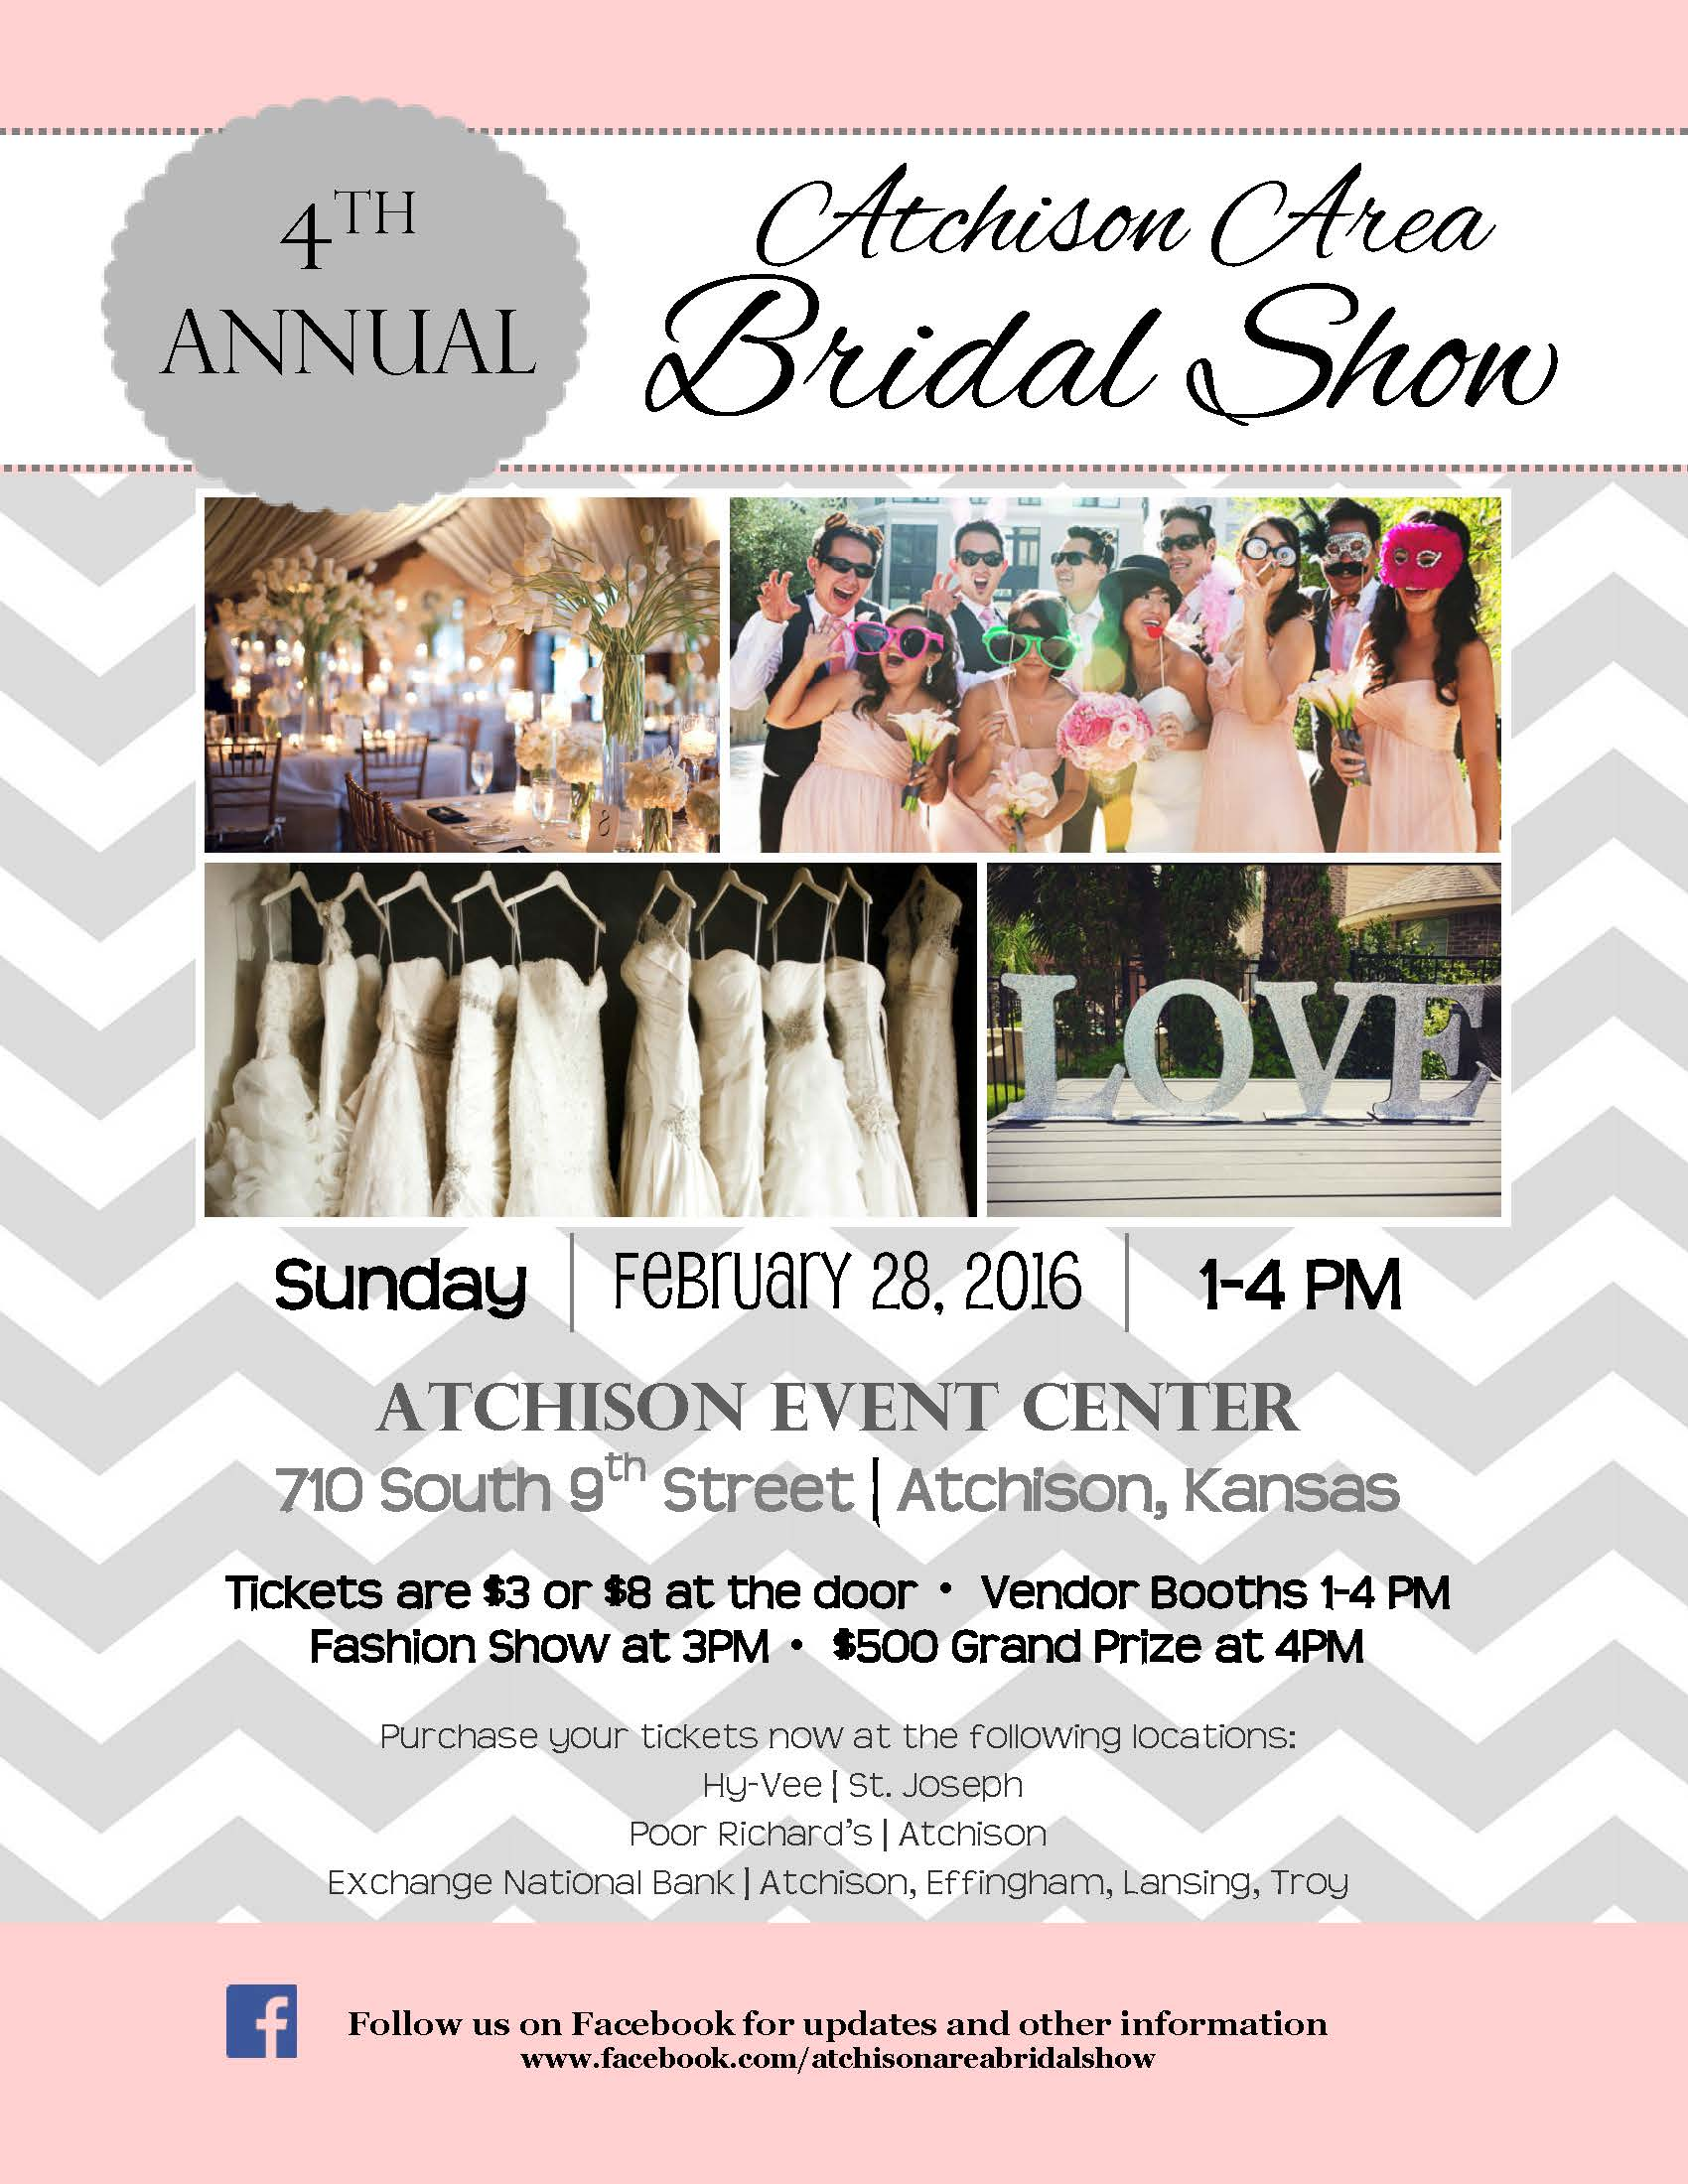 The 4th annual Atchison Area Bridal Show will take place at the Atchison Event Center on Sunday, February, 28, 2016, from 1 p.m. to 4 p.m. Local vendors will be available from 1-4 p.m. A fashion show will take place at 3 p.m., and winners of the giveaway prizes, including the $500 grand prize, will be announced at 4 p.m.  Tickets for the bridal show are $3 in advance. They will be available for purchase from January 1 to February 26 at the following locations:  Hy-Vee in St. Joseph, MO; Poor Richards in Atchison, KS; and the Exchange National Bank locations in Atchison, Effingham, Lansing, and Troy.  Tickets can also be purchased at the door for $8.